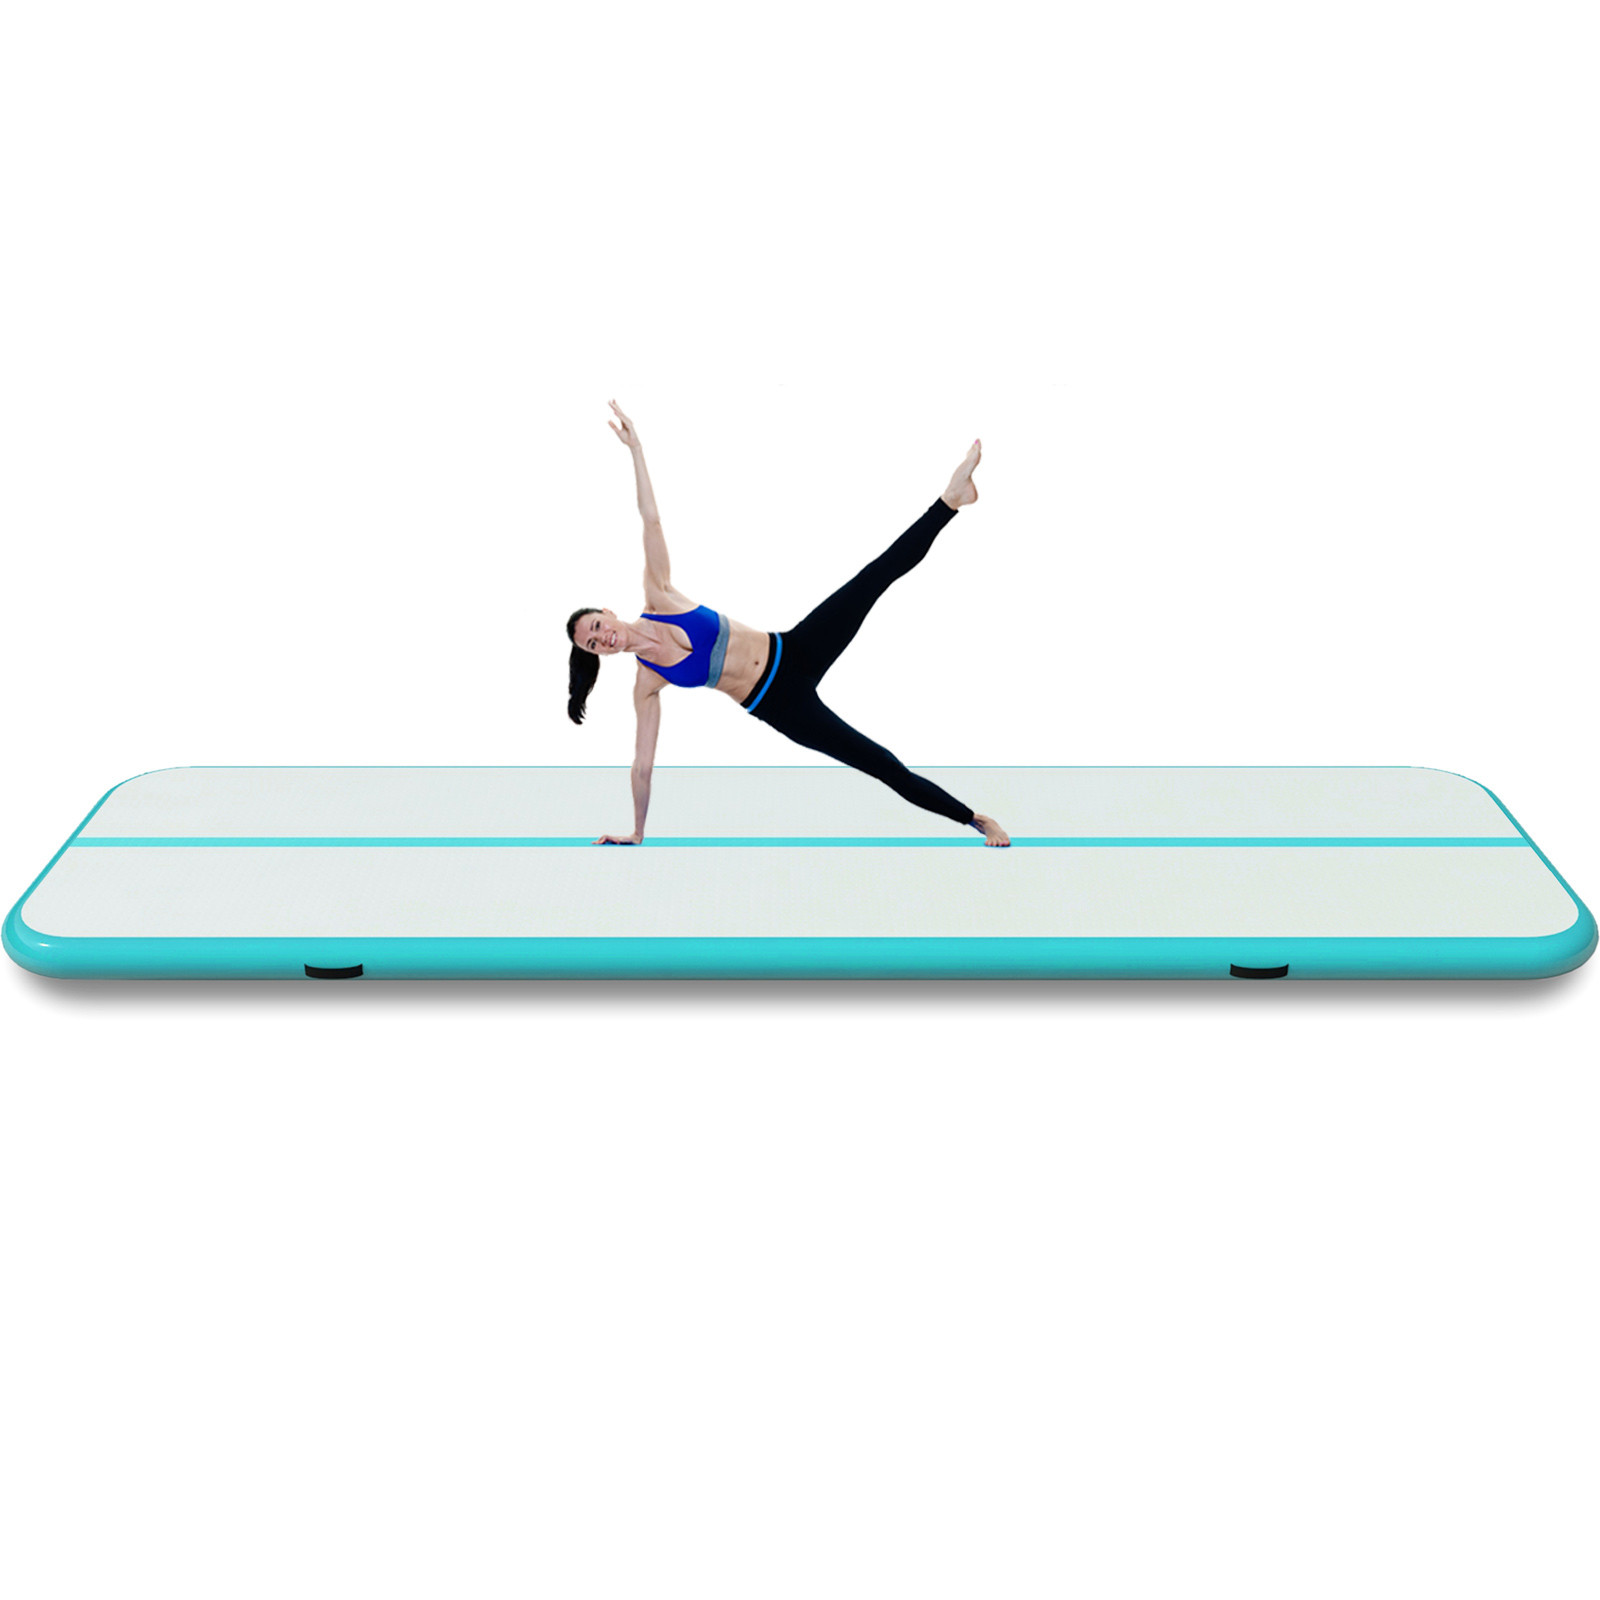 4-12M-Tapis-de-Gymnastique-Gonflable-Yoga-Fitness-Tapis-de-Tumbling-Airtrack miniature 58